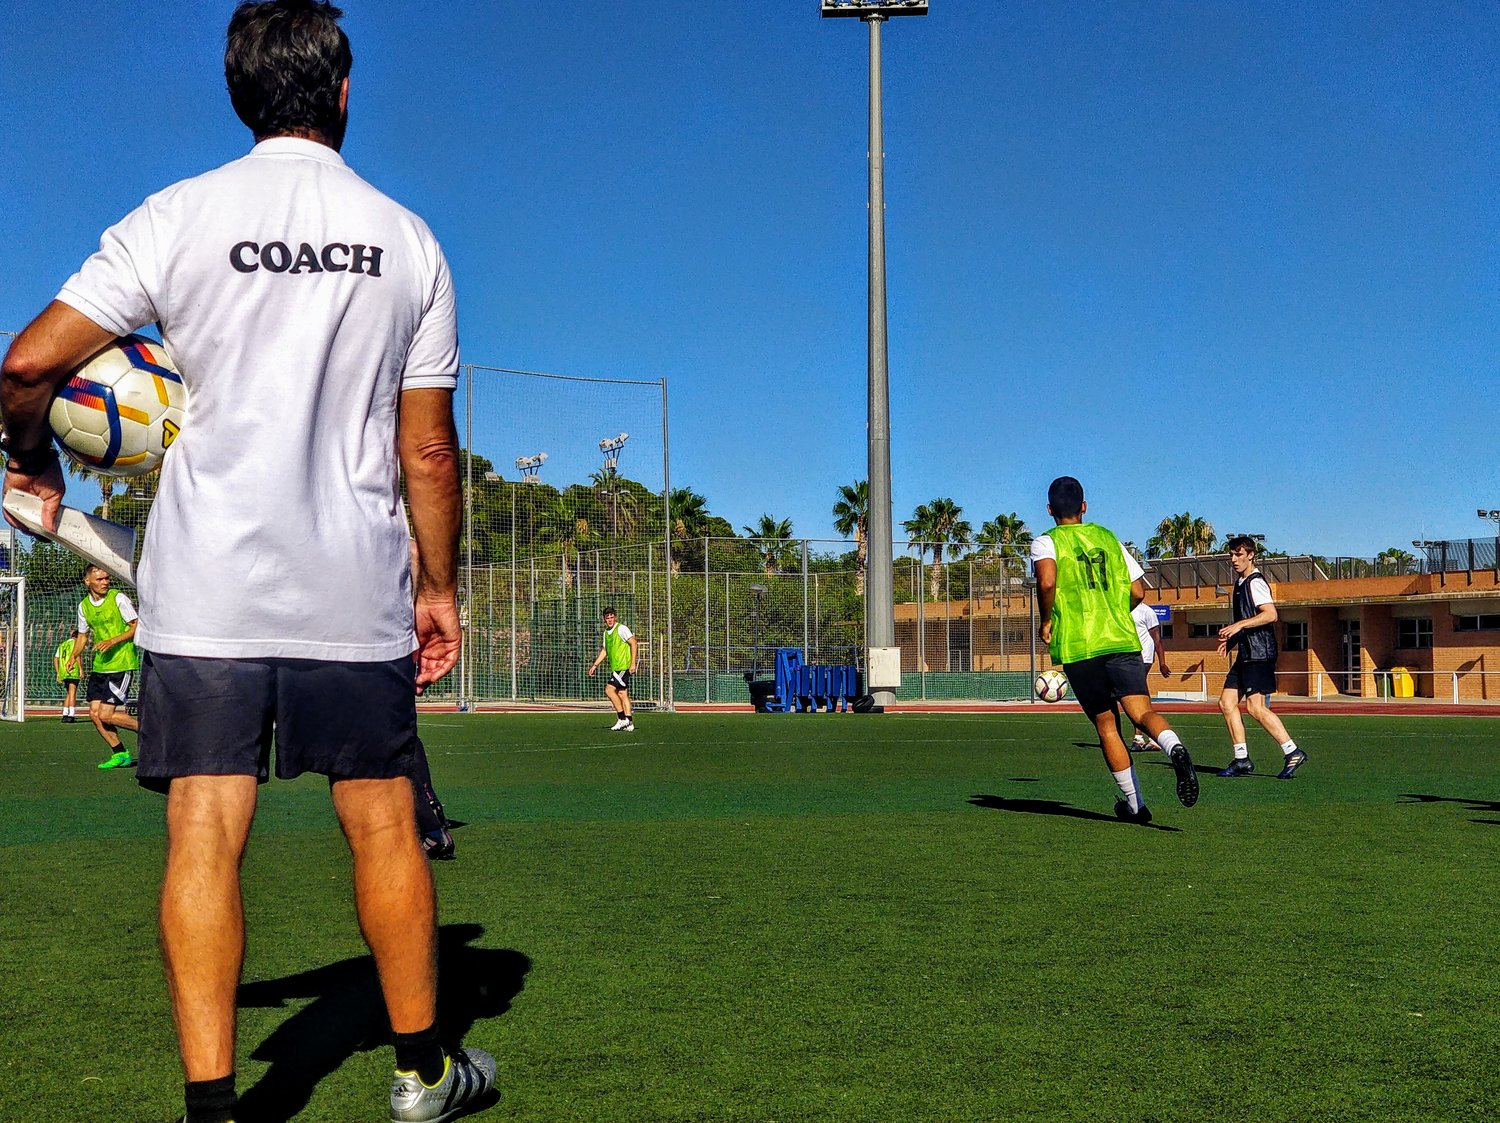 Play Spain - Soccer academy in Spain, play soccer in Spain, Alicante football.Click here to sign up now!